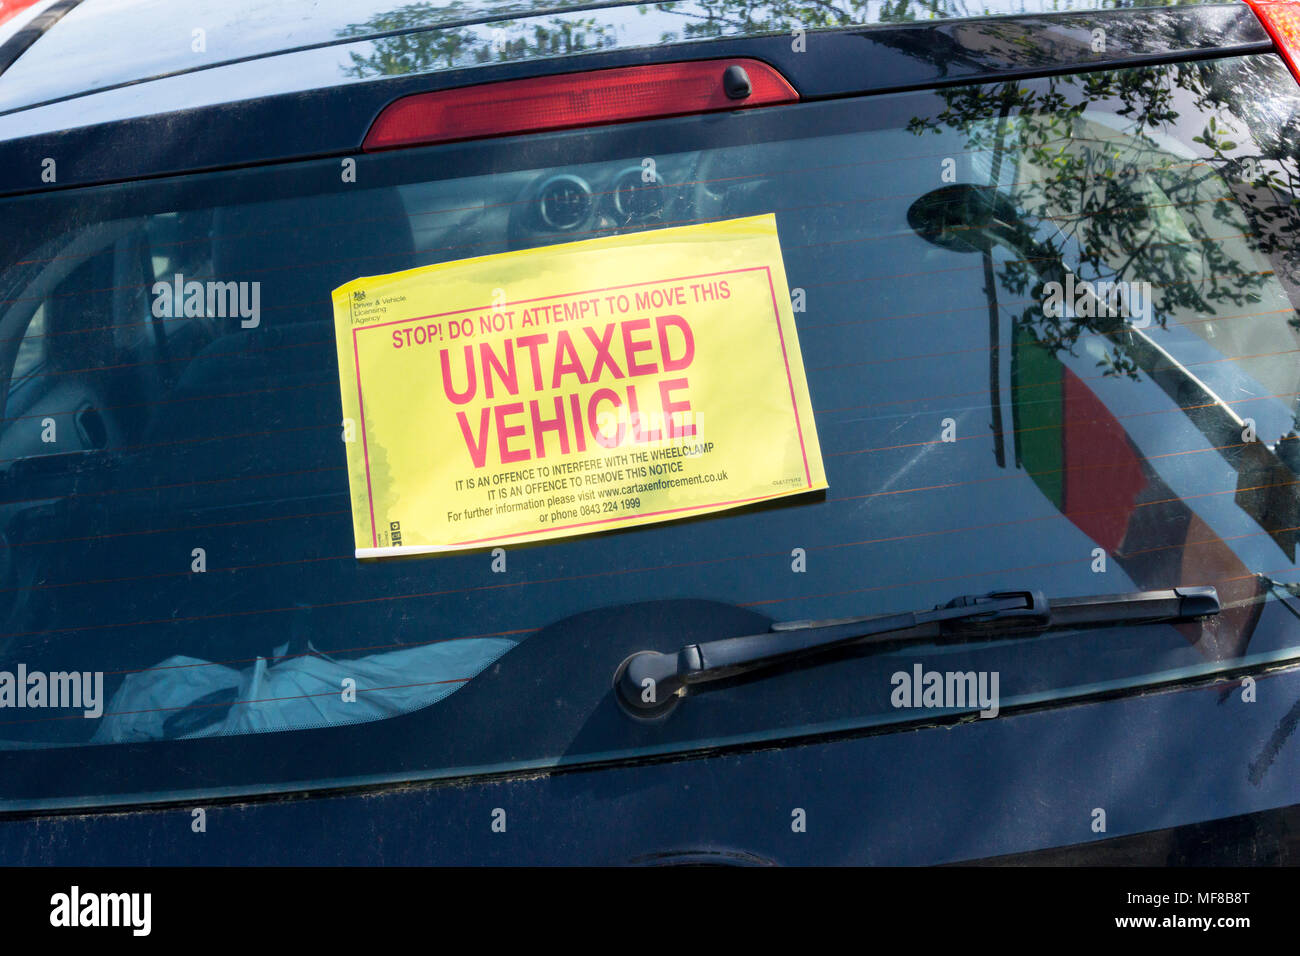 Stop! Do Not Attempt To Move This Untaxed Vehicle. Sign on rear window of an untaxed car. Stock Photo